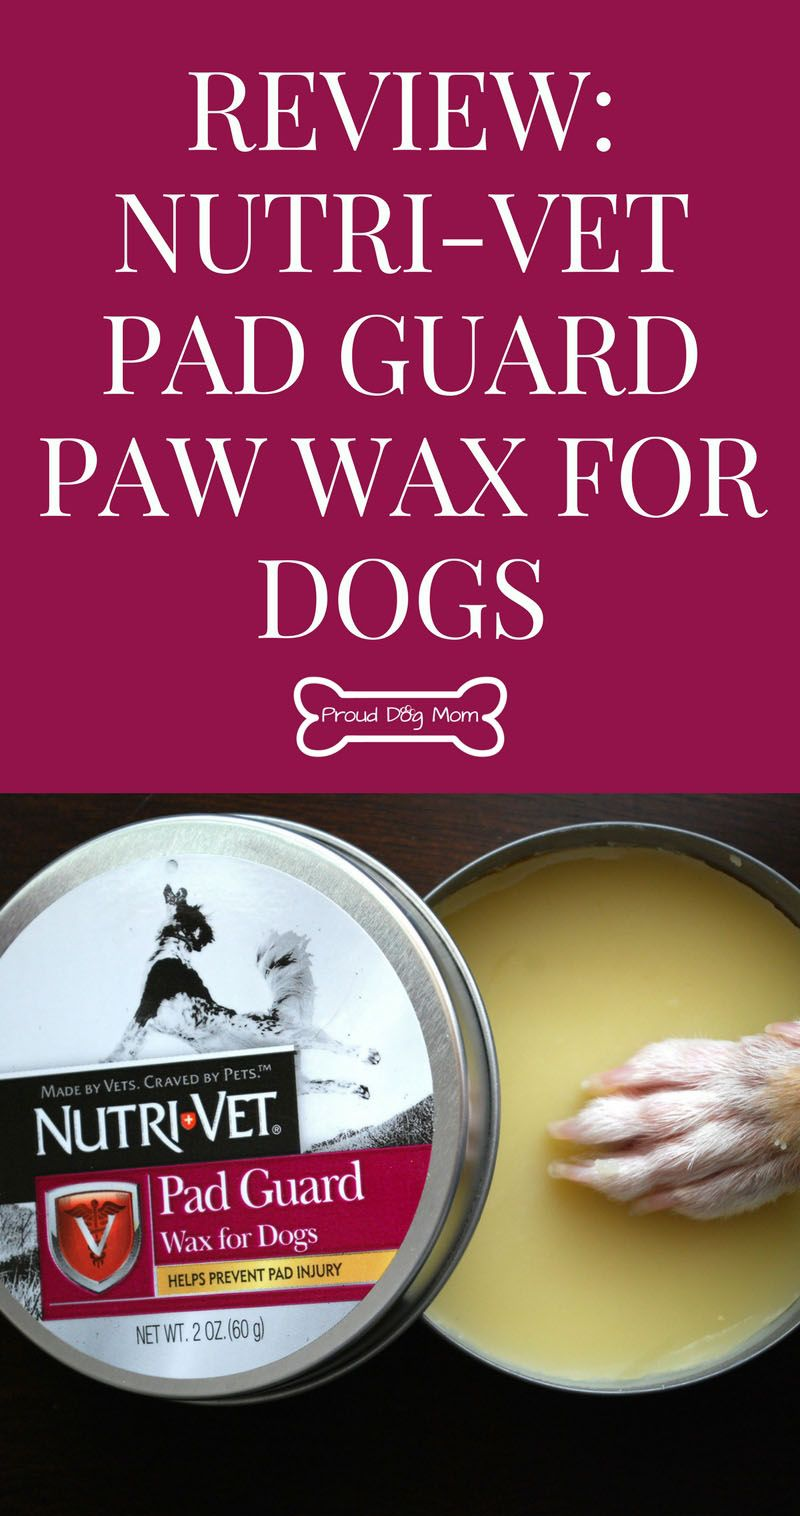 Review NutriVet Pad Guard Paw Wax For Dogs Dog